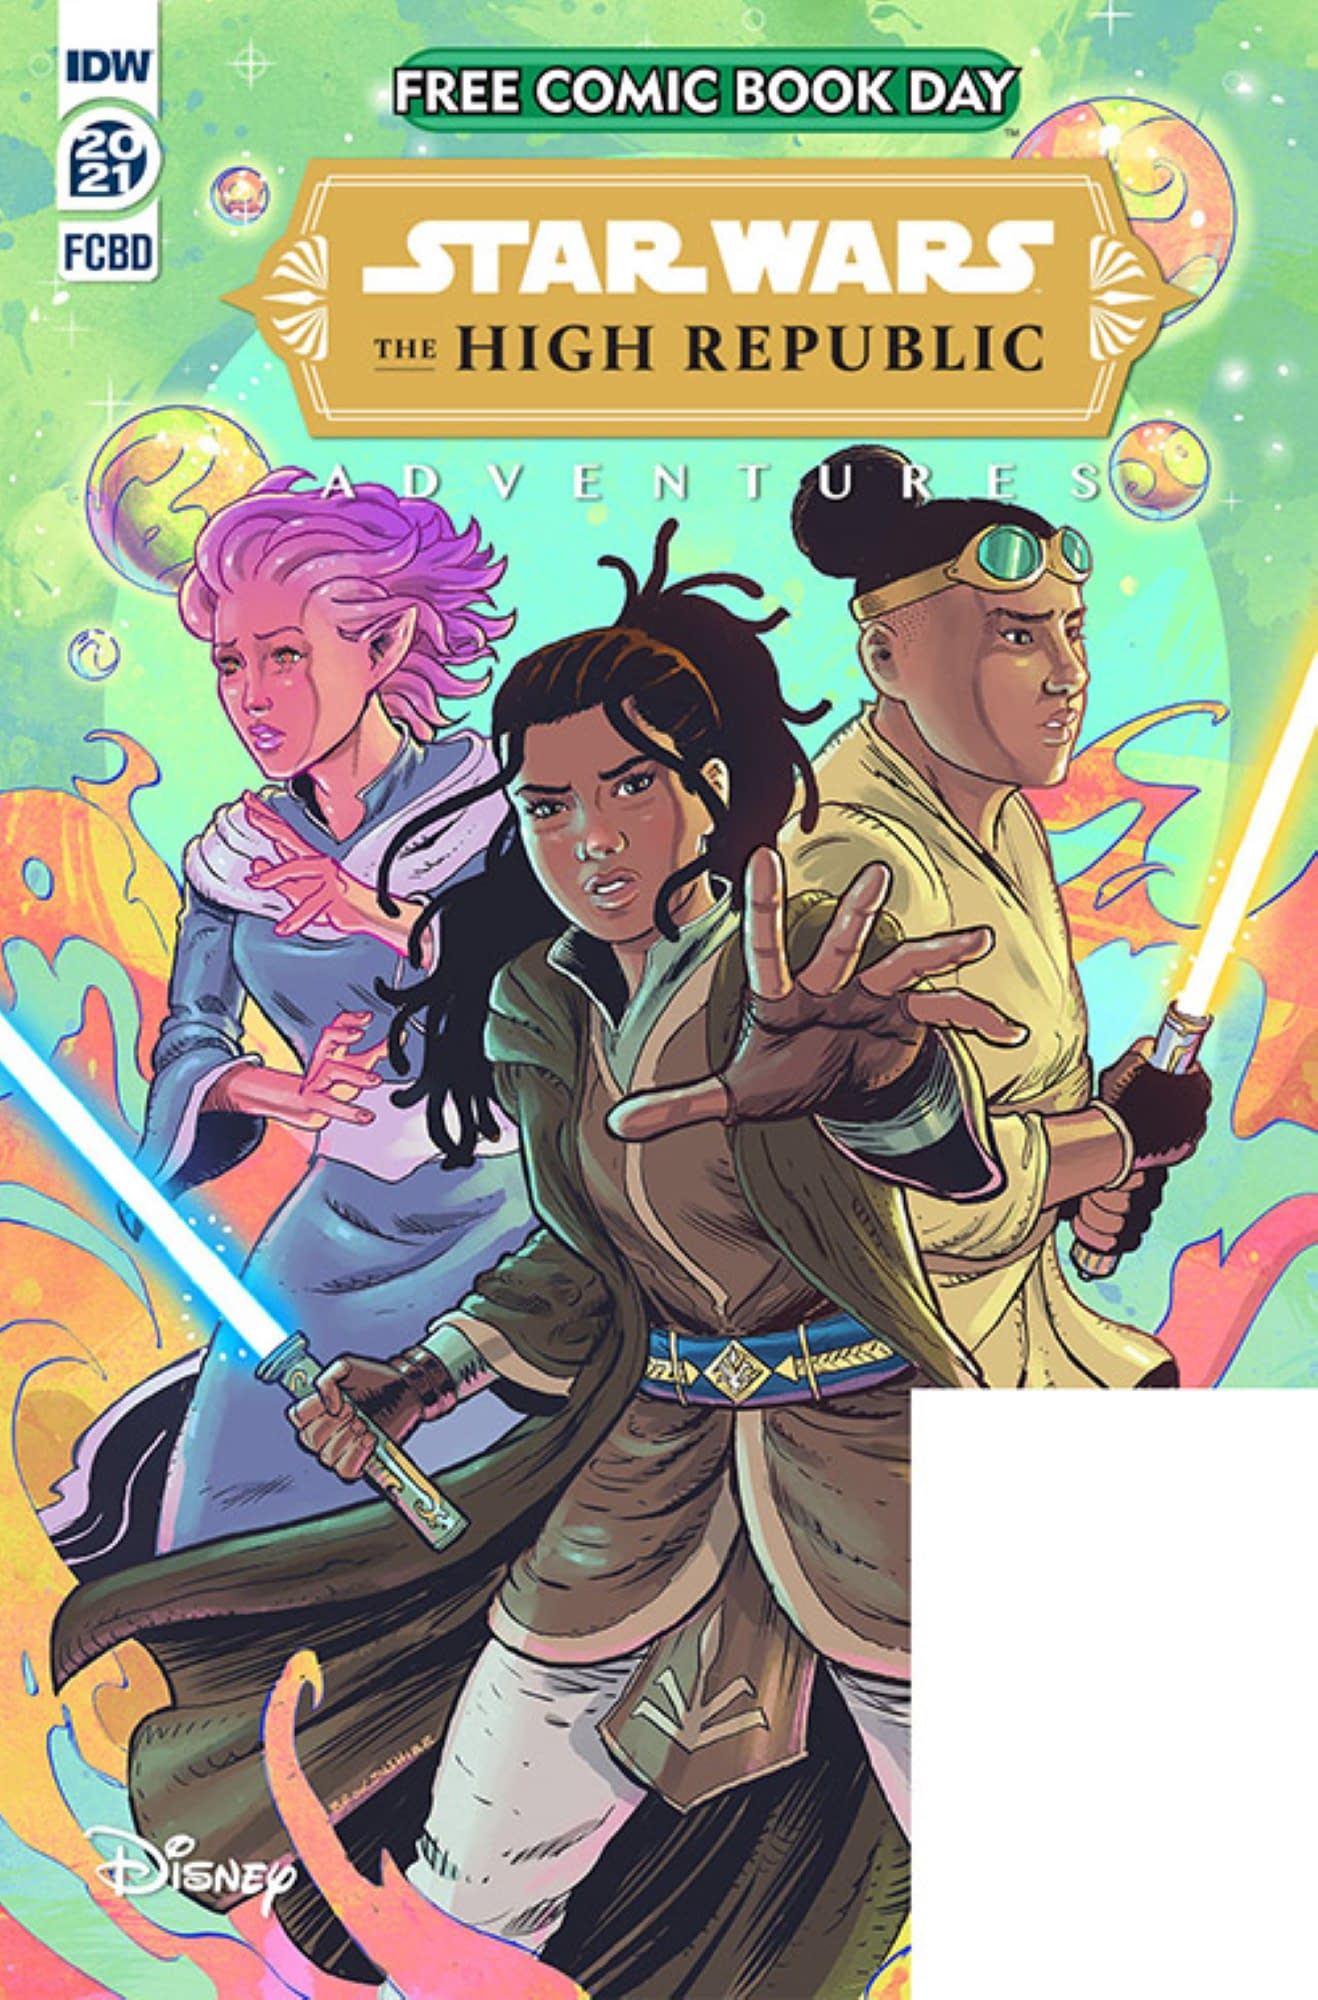 SCOOP: Full List Of All 50 Free Comic Book Day Titles For FCBD 2021